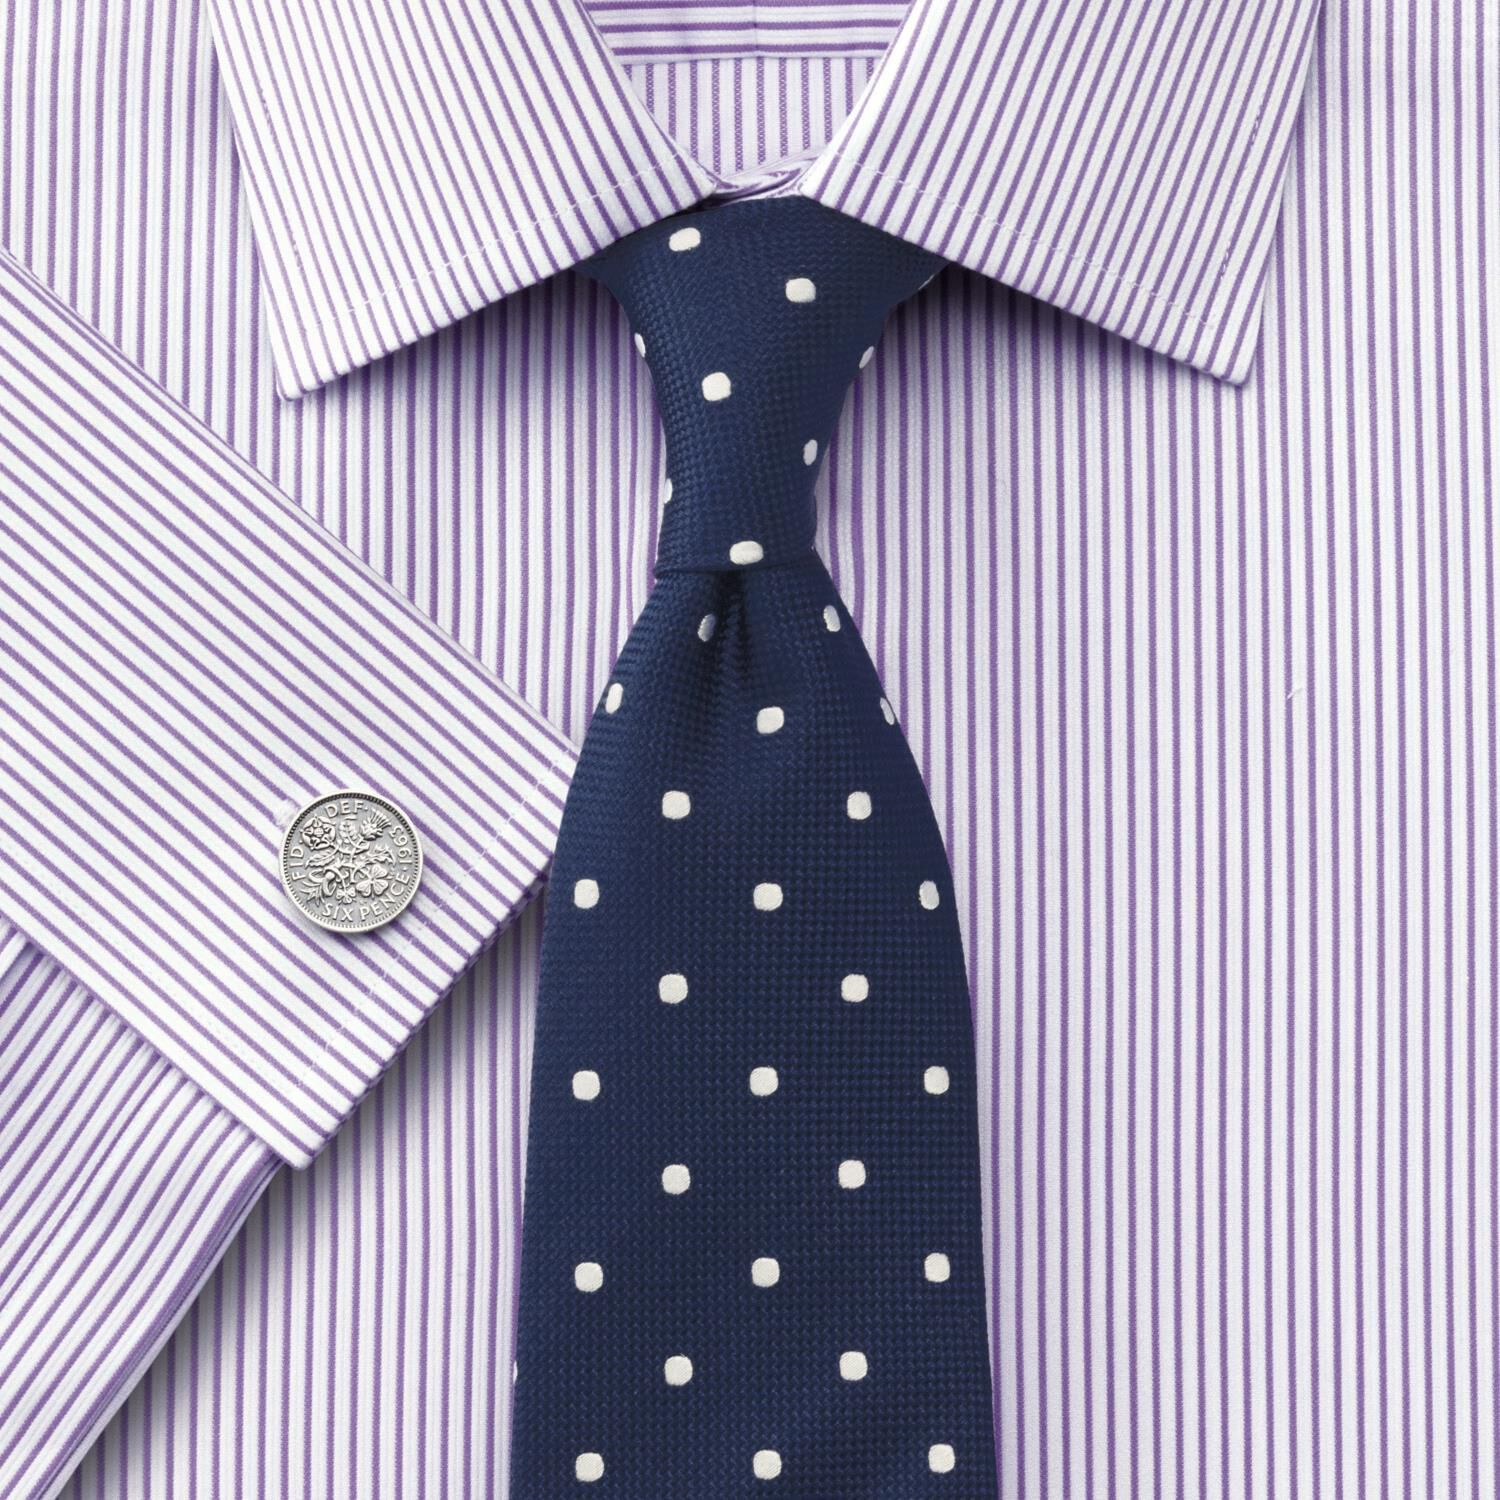 Classic Fit Bedford Raised Stripe Lilac Cotton Formal Shirt Single Cuff Size 18/37 by Charles Tyrwhi